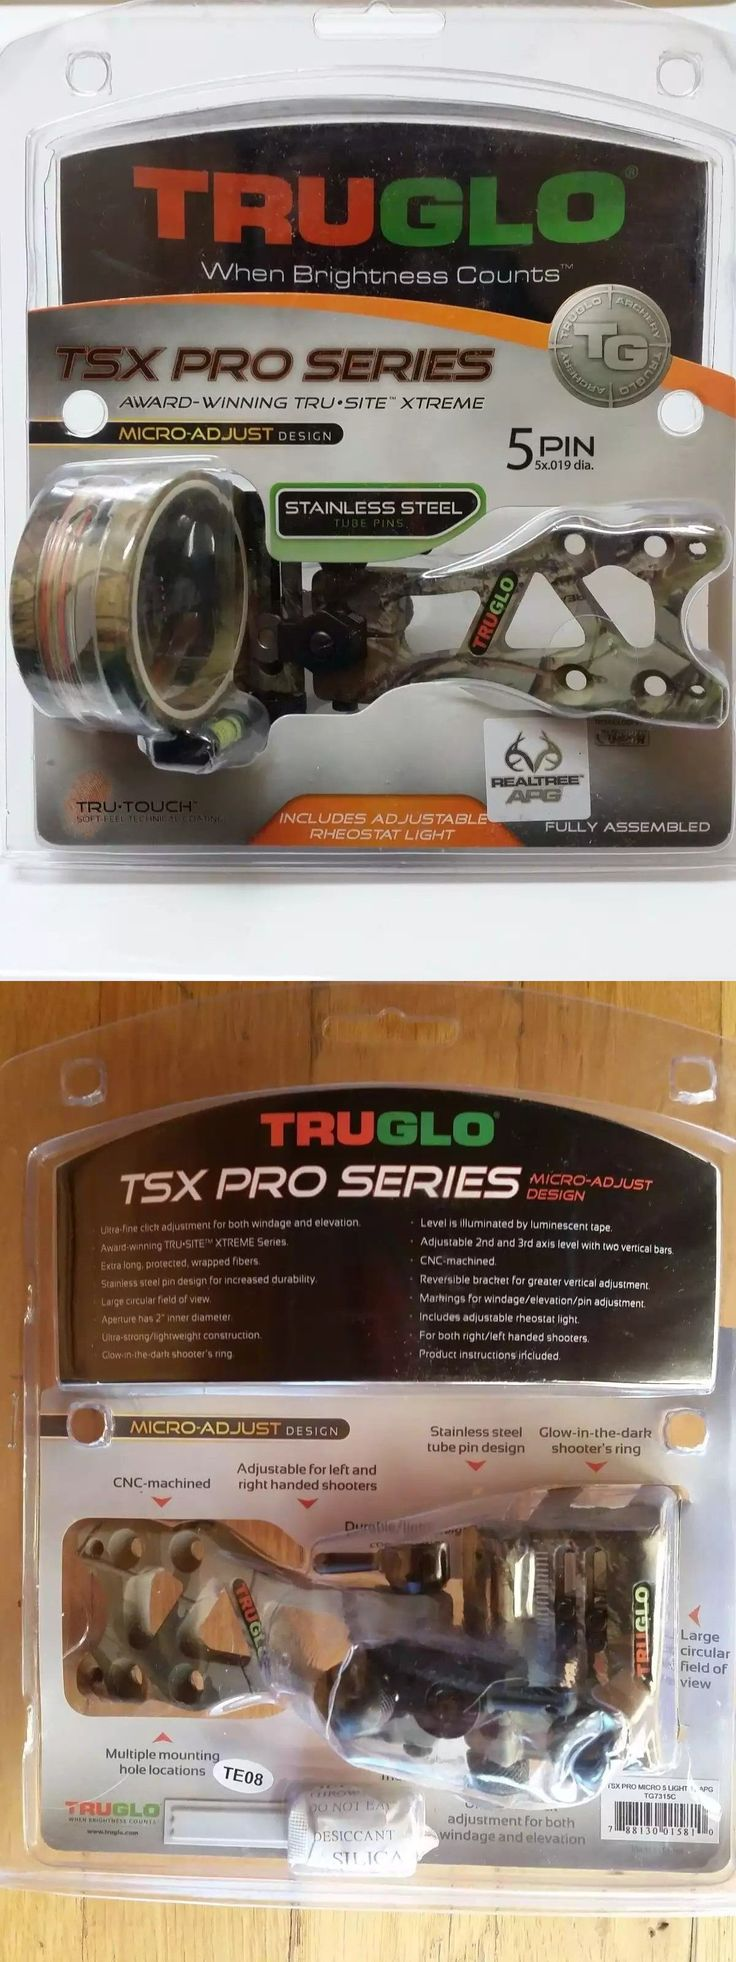 Sights 20845: Truglo Tsx Pro Serie 5-Pin Sight Micro Rt Apg Archery Compound Bow Accessories -> BUY IT NOW ONLY: $38.95 on eBay!